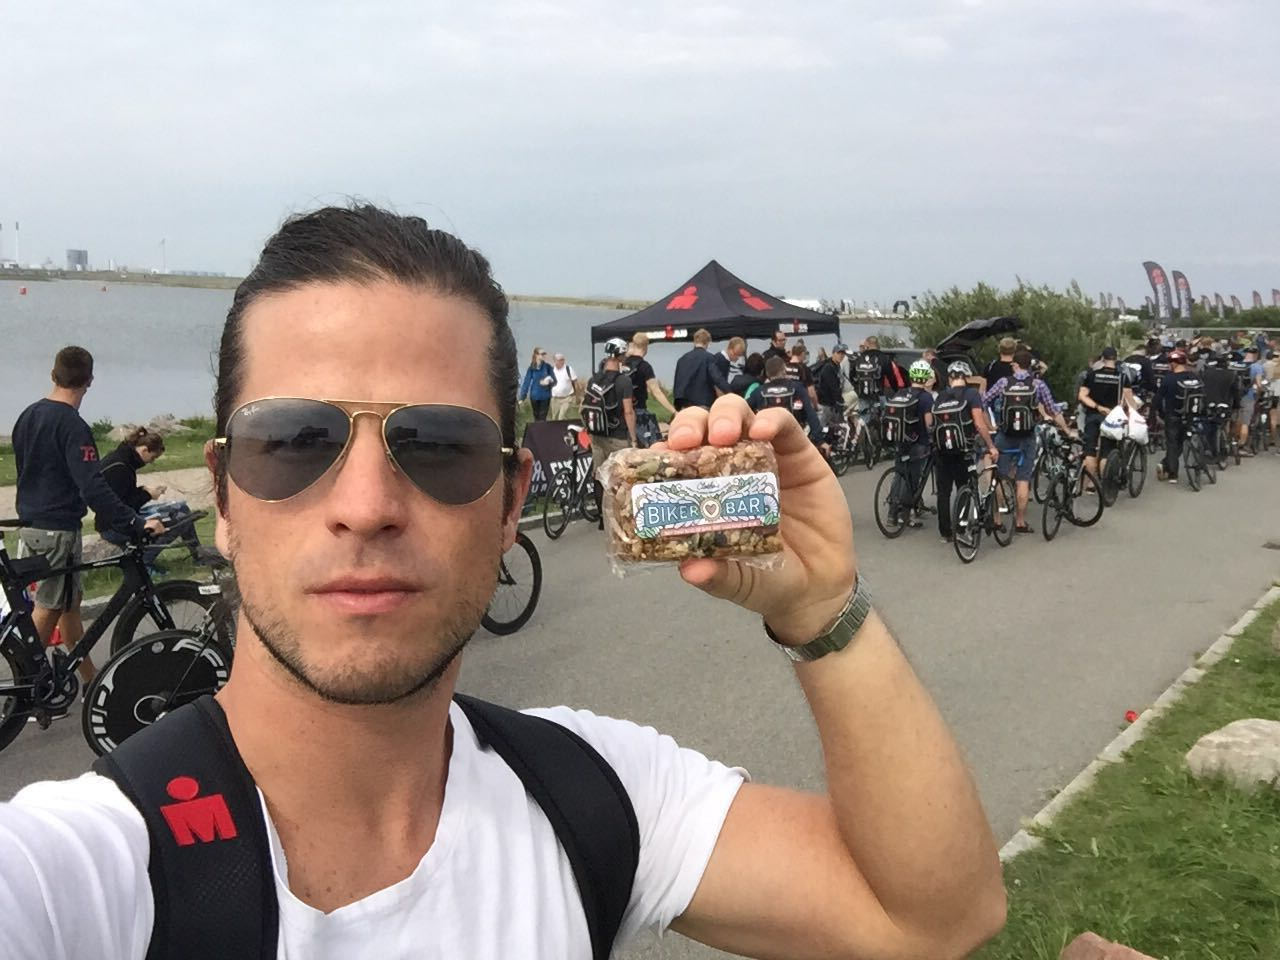 Dario from Houston sent these photos from Ironman Copenhagen. This was his first full-distance Ironman triathlon and he rocked it with an amazing time of 12:49!!! I am over-the-moon delighted that he chose the Biker Bar and Nuts and Bolts as part of his nutrition regimen during the race.